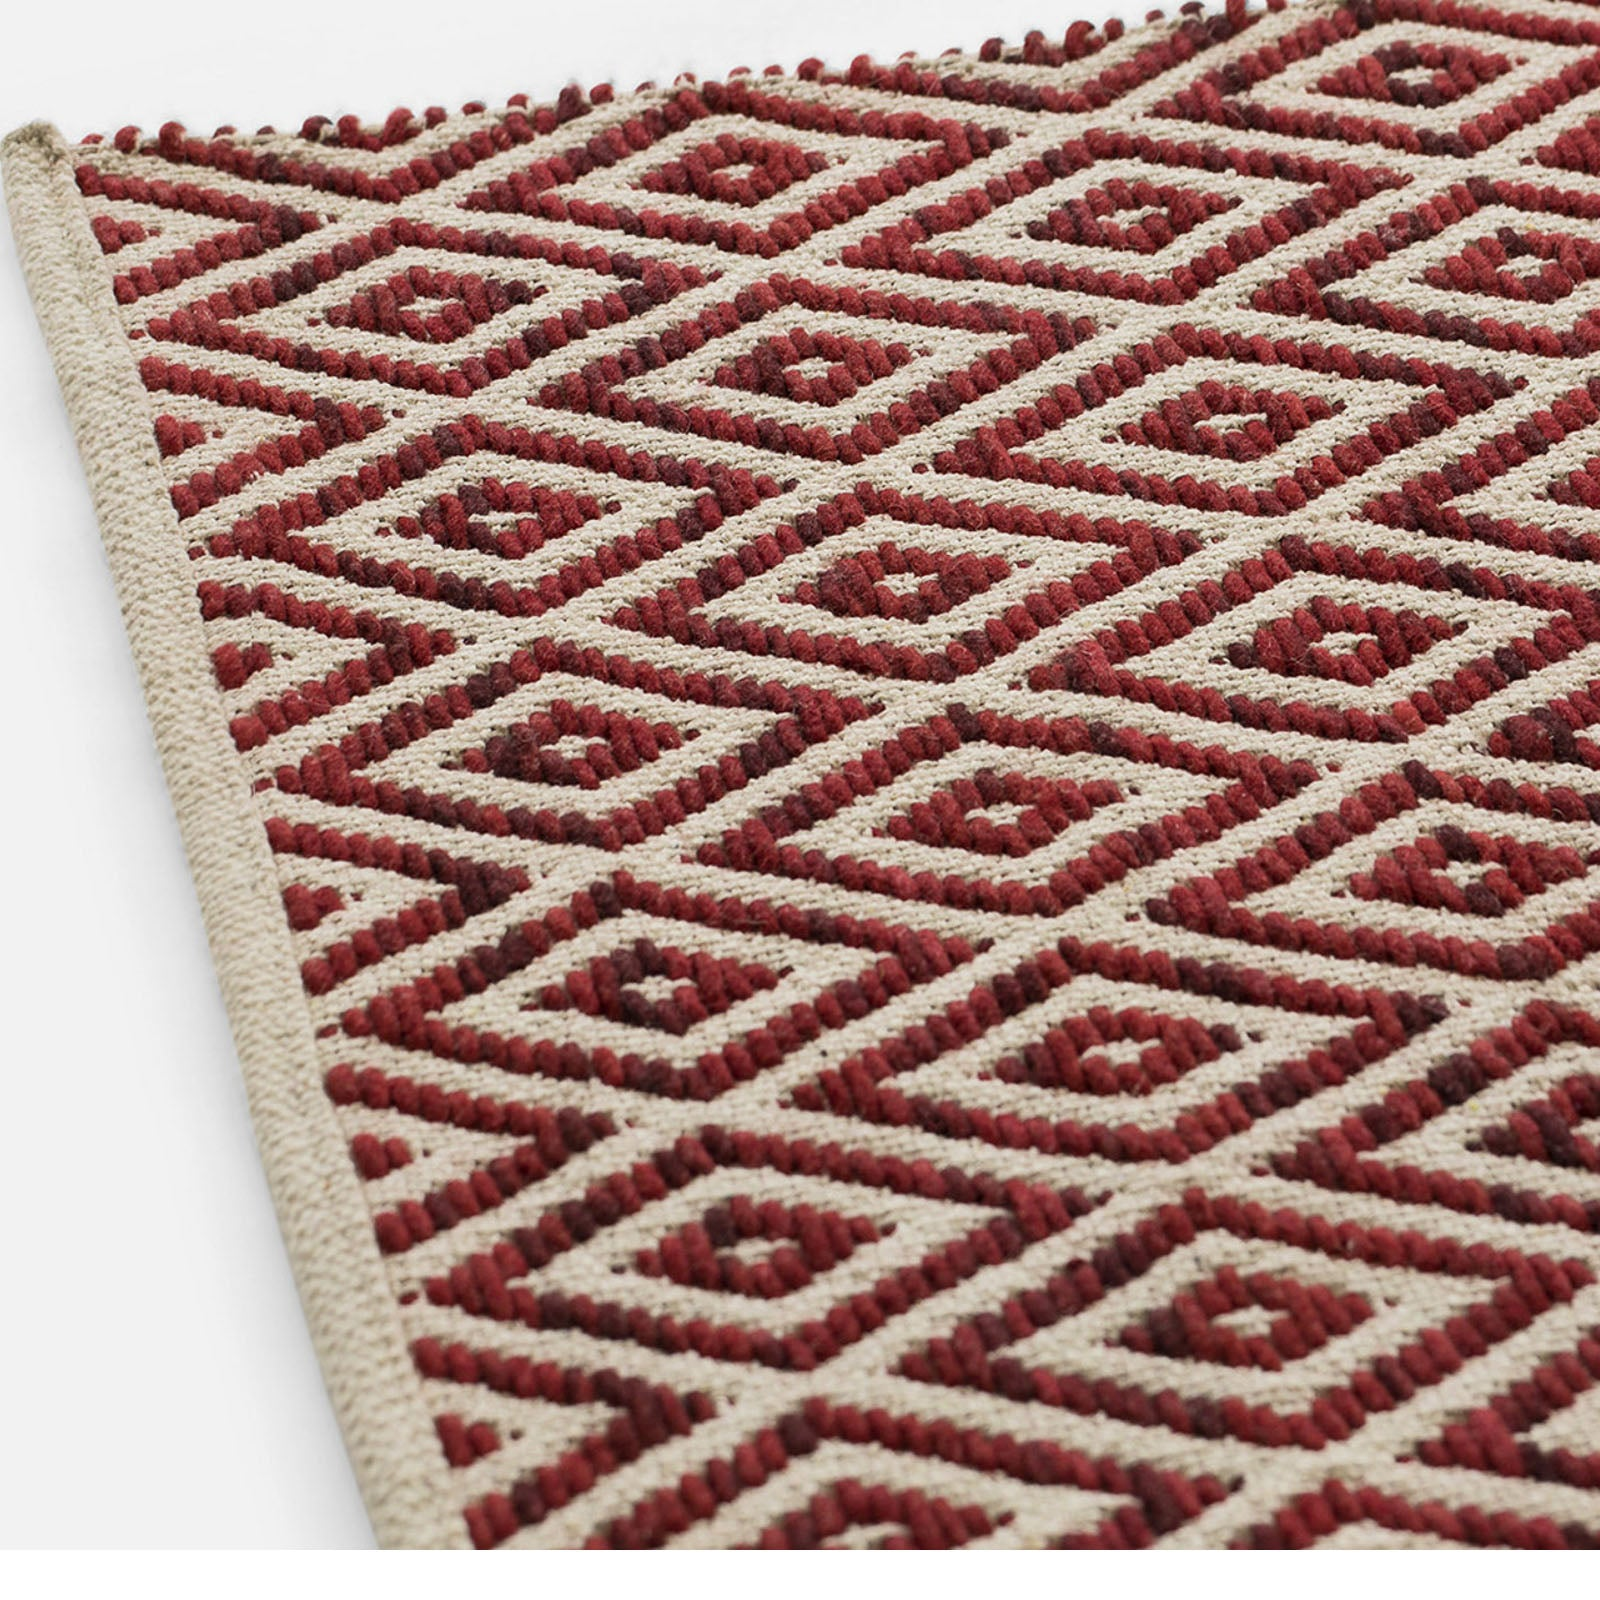 200x300 cm HANDMADE WOOL rug Caterina-Red-XL - ebarza